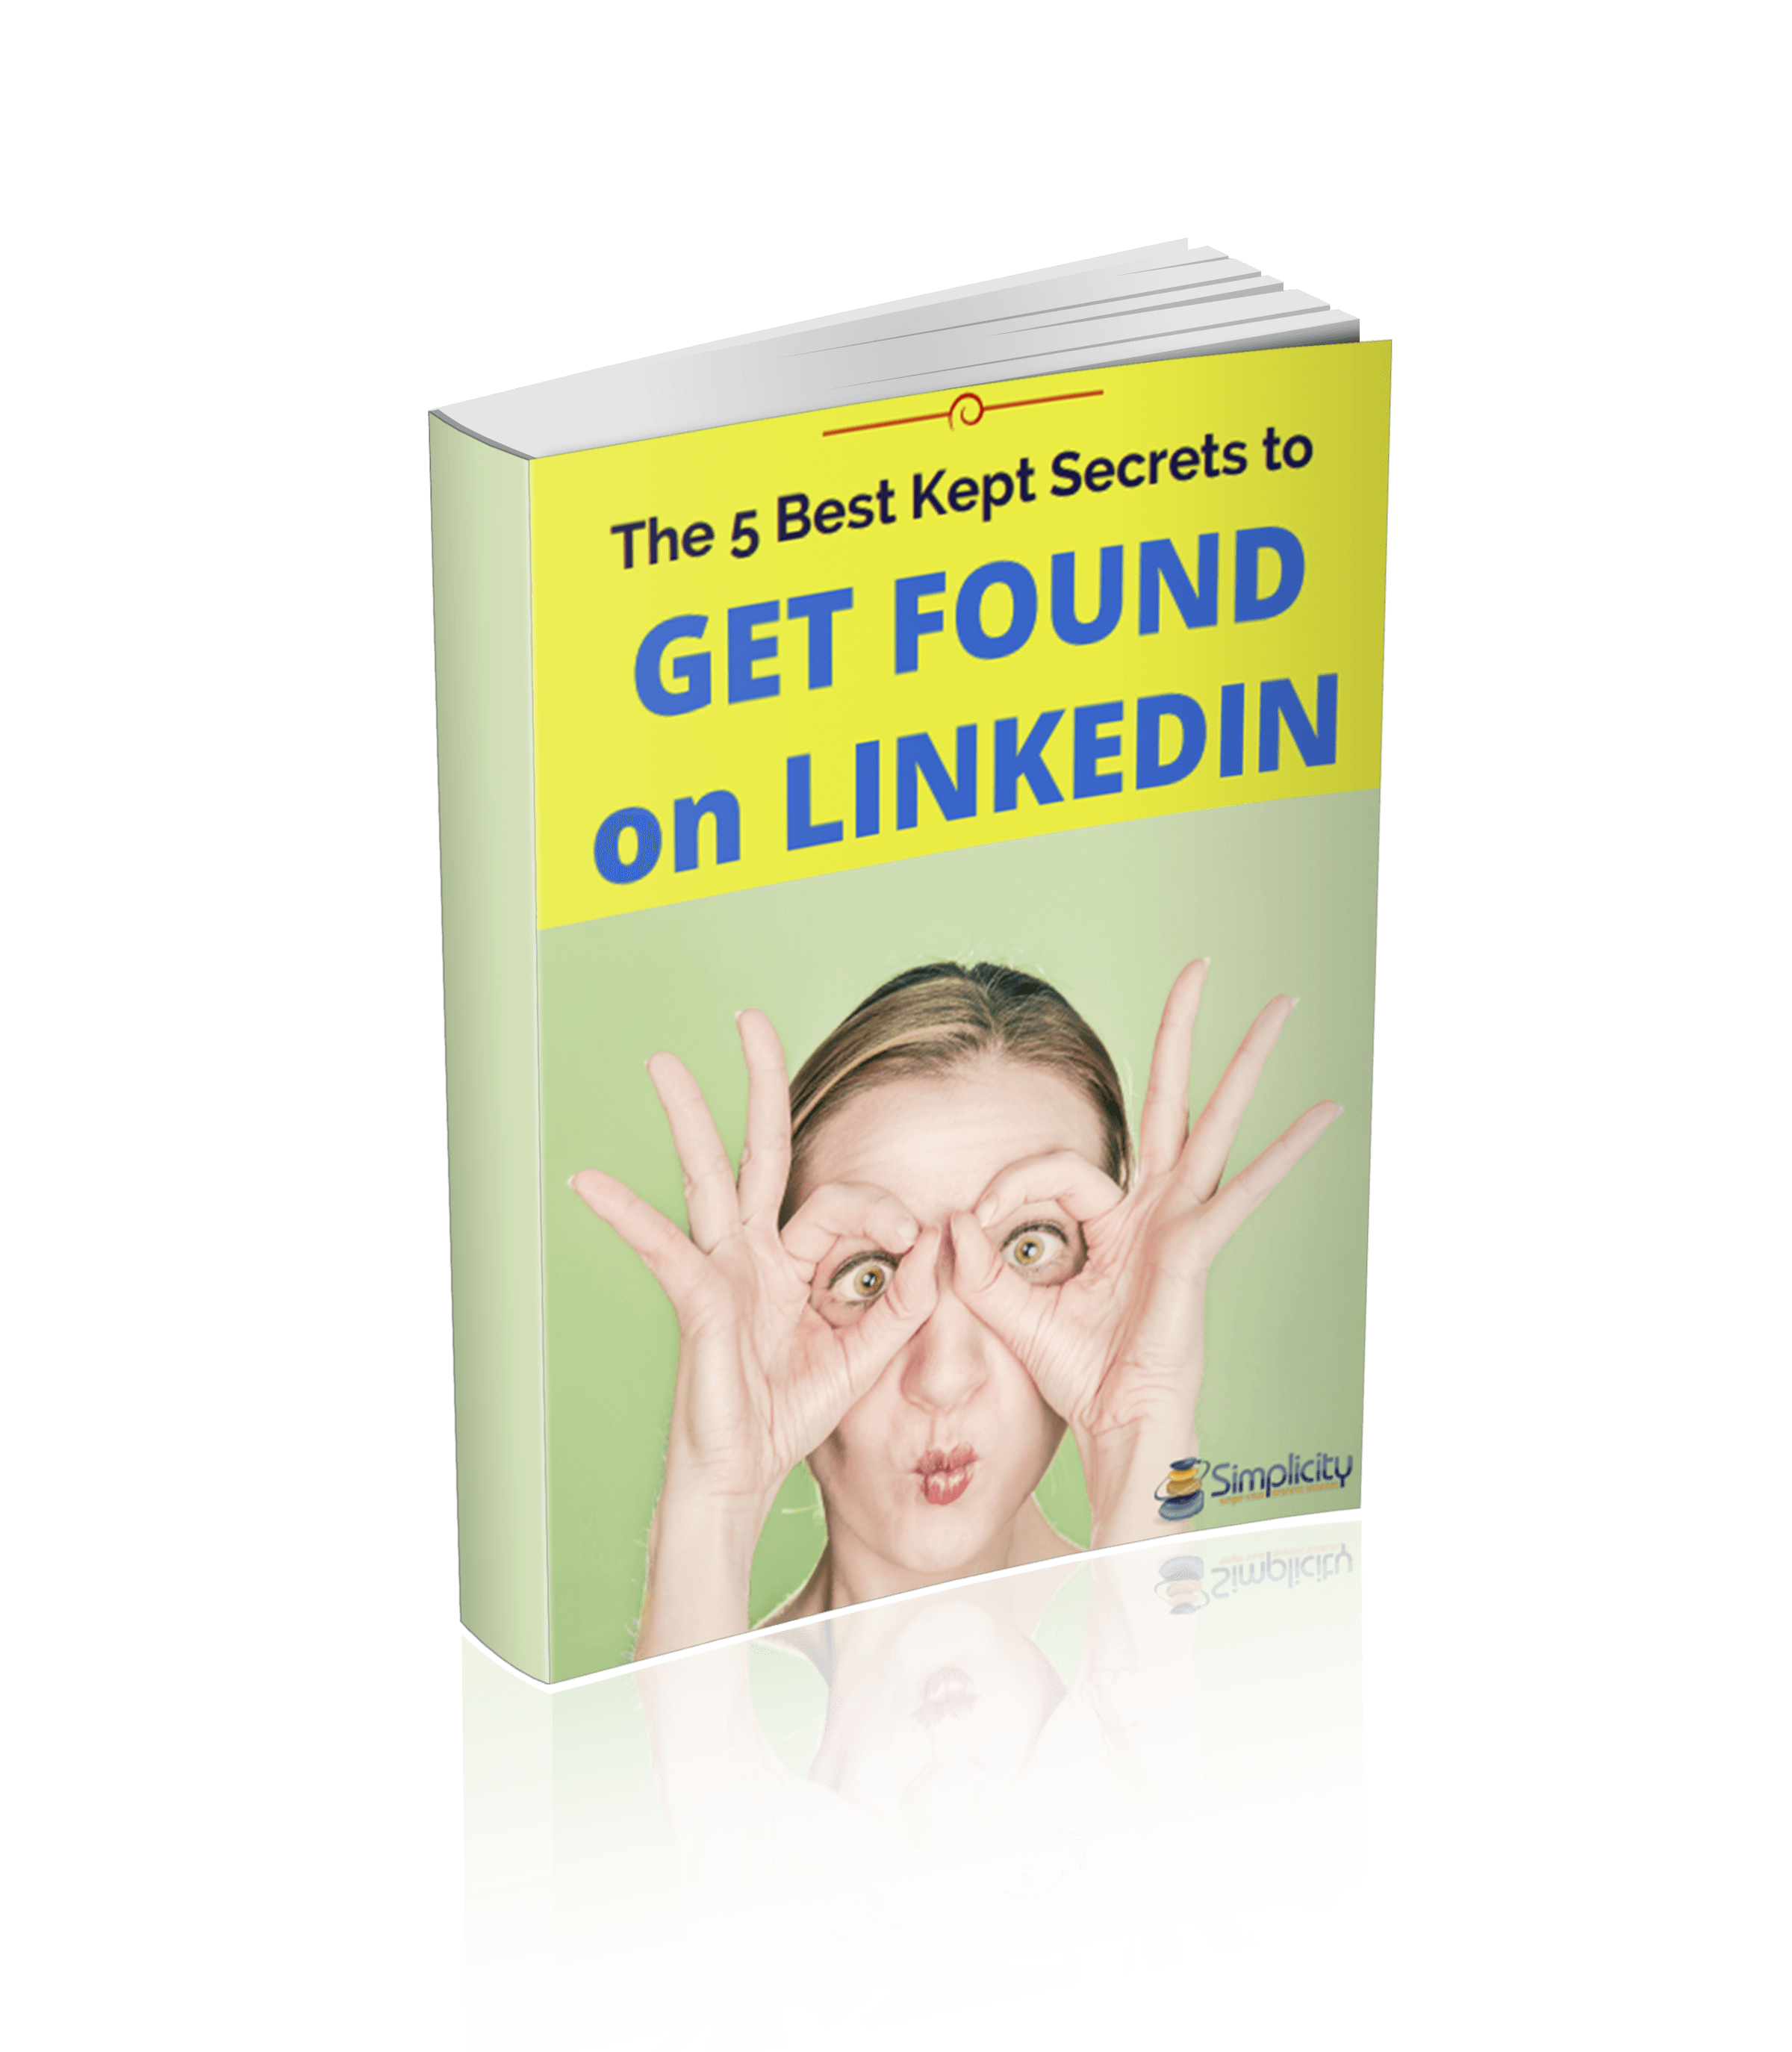 5 Best Kept Secrets To Get Found on LinkedIn